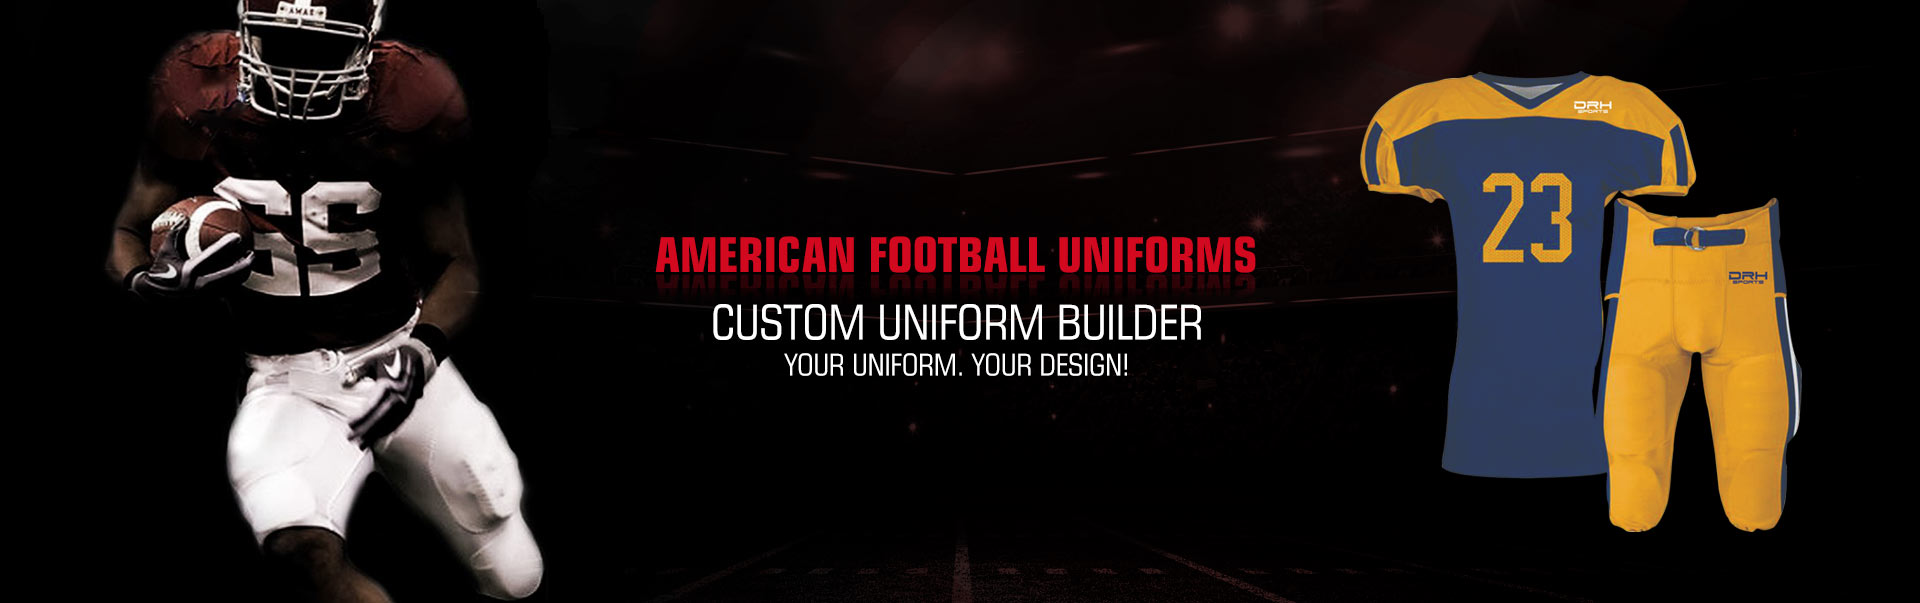 American Football Uniform Wholesaler, Suppliers in Bochum